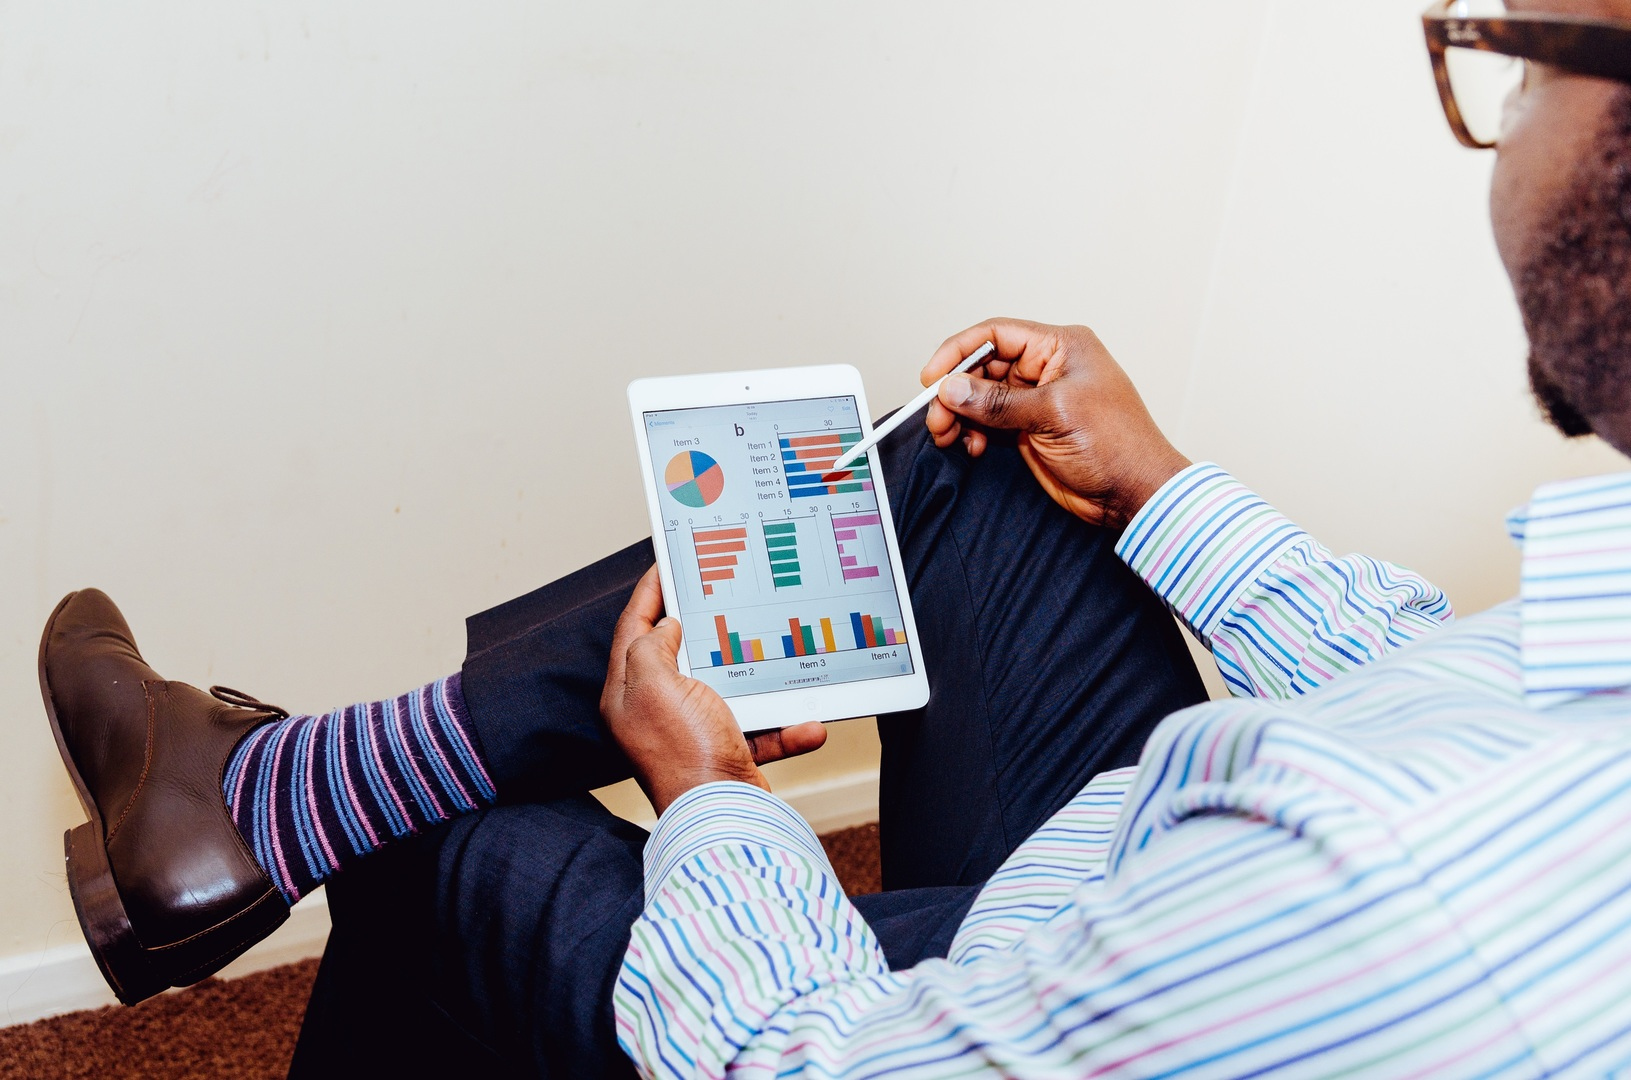 Wondering how to organize those key performance indicators? A KPI dashboard is an essential way to organize the data in one spot. Here's how to set up a KPI dashboard.